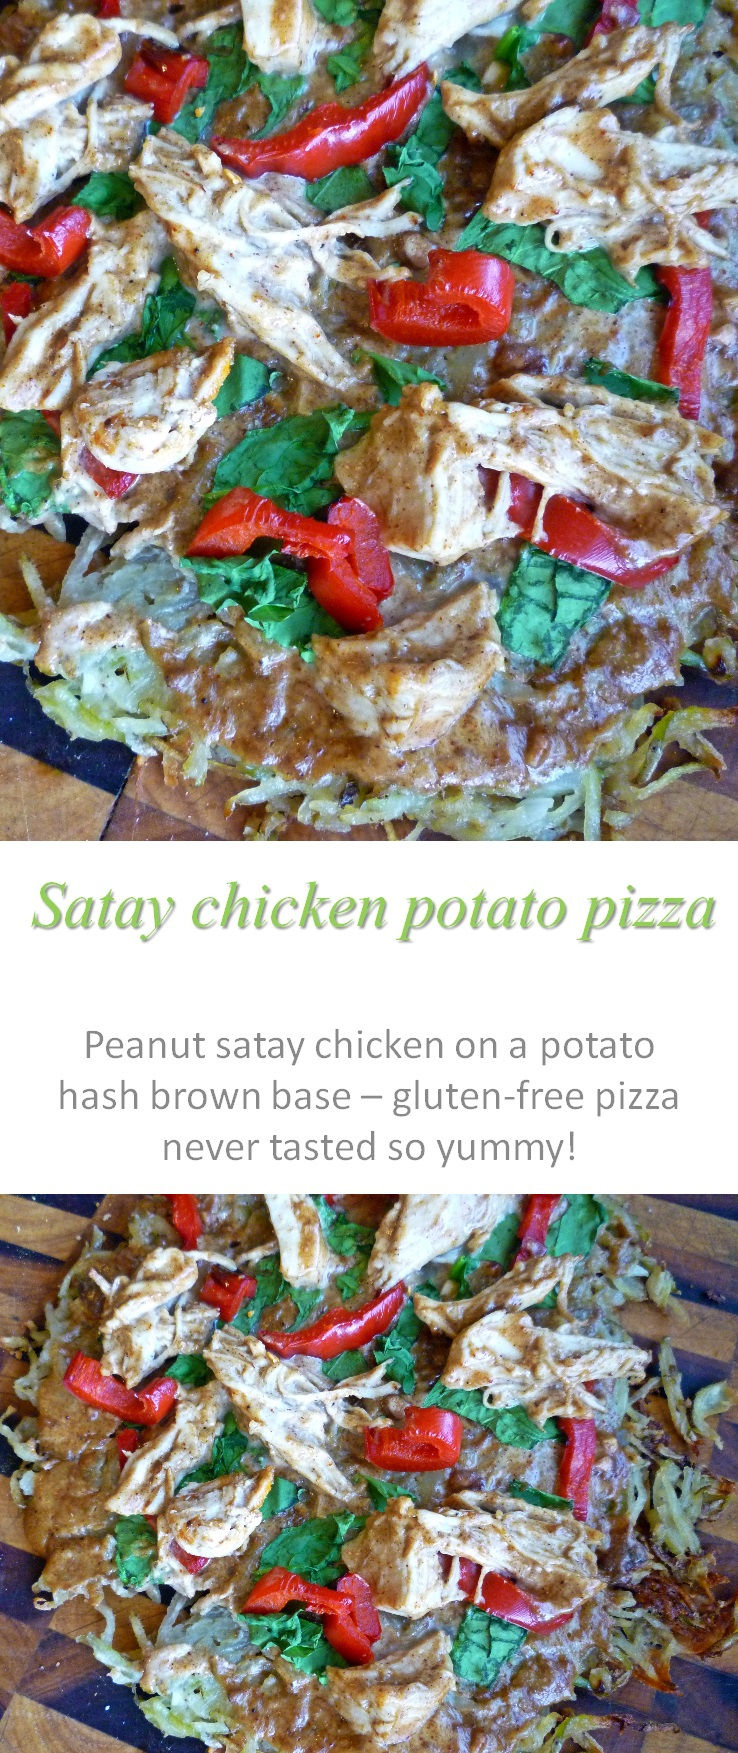 A potato pizza crust (gluten and dairy-free) topped with peanut satay chicken, spinach and peppers - what could be better for pizza nights? #pizza